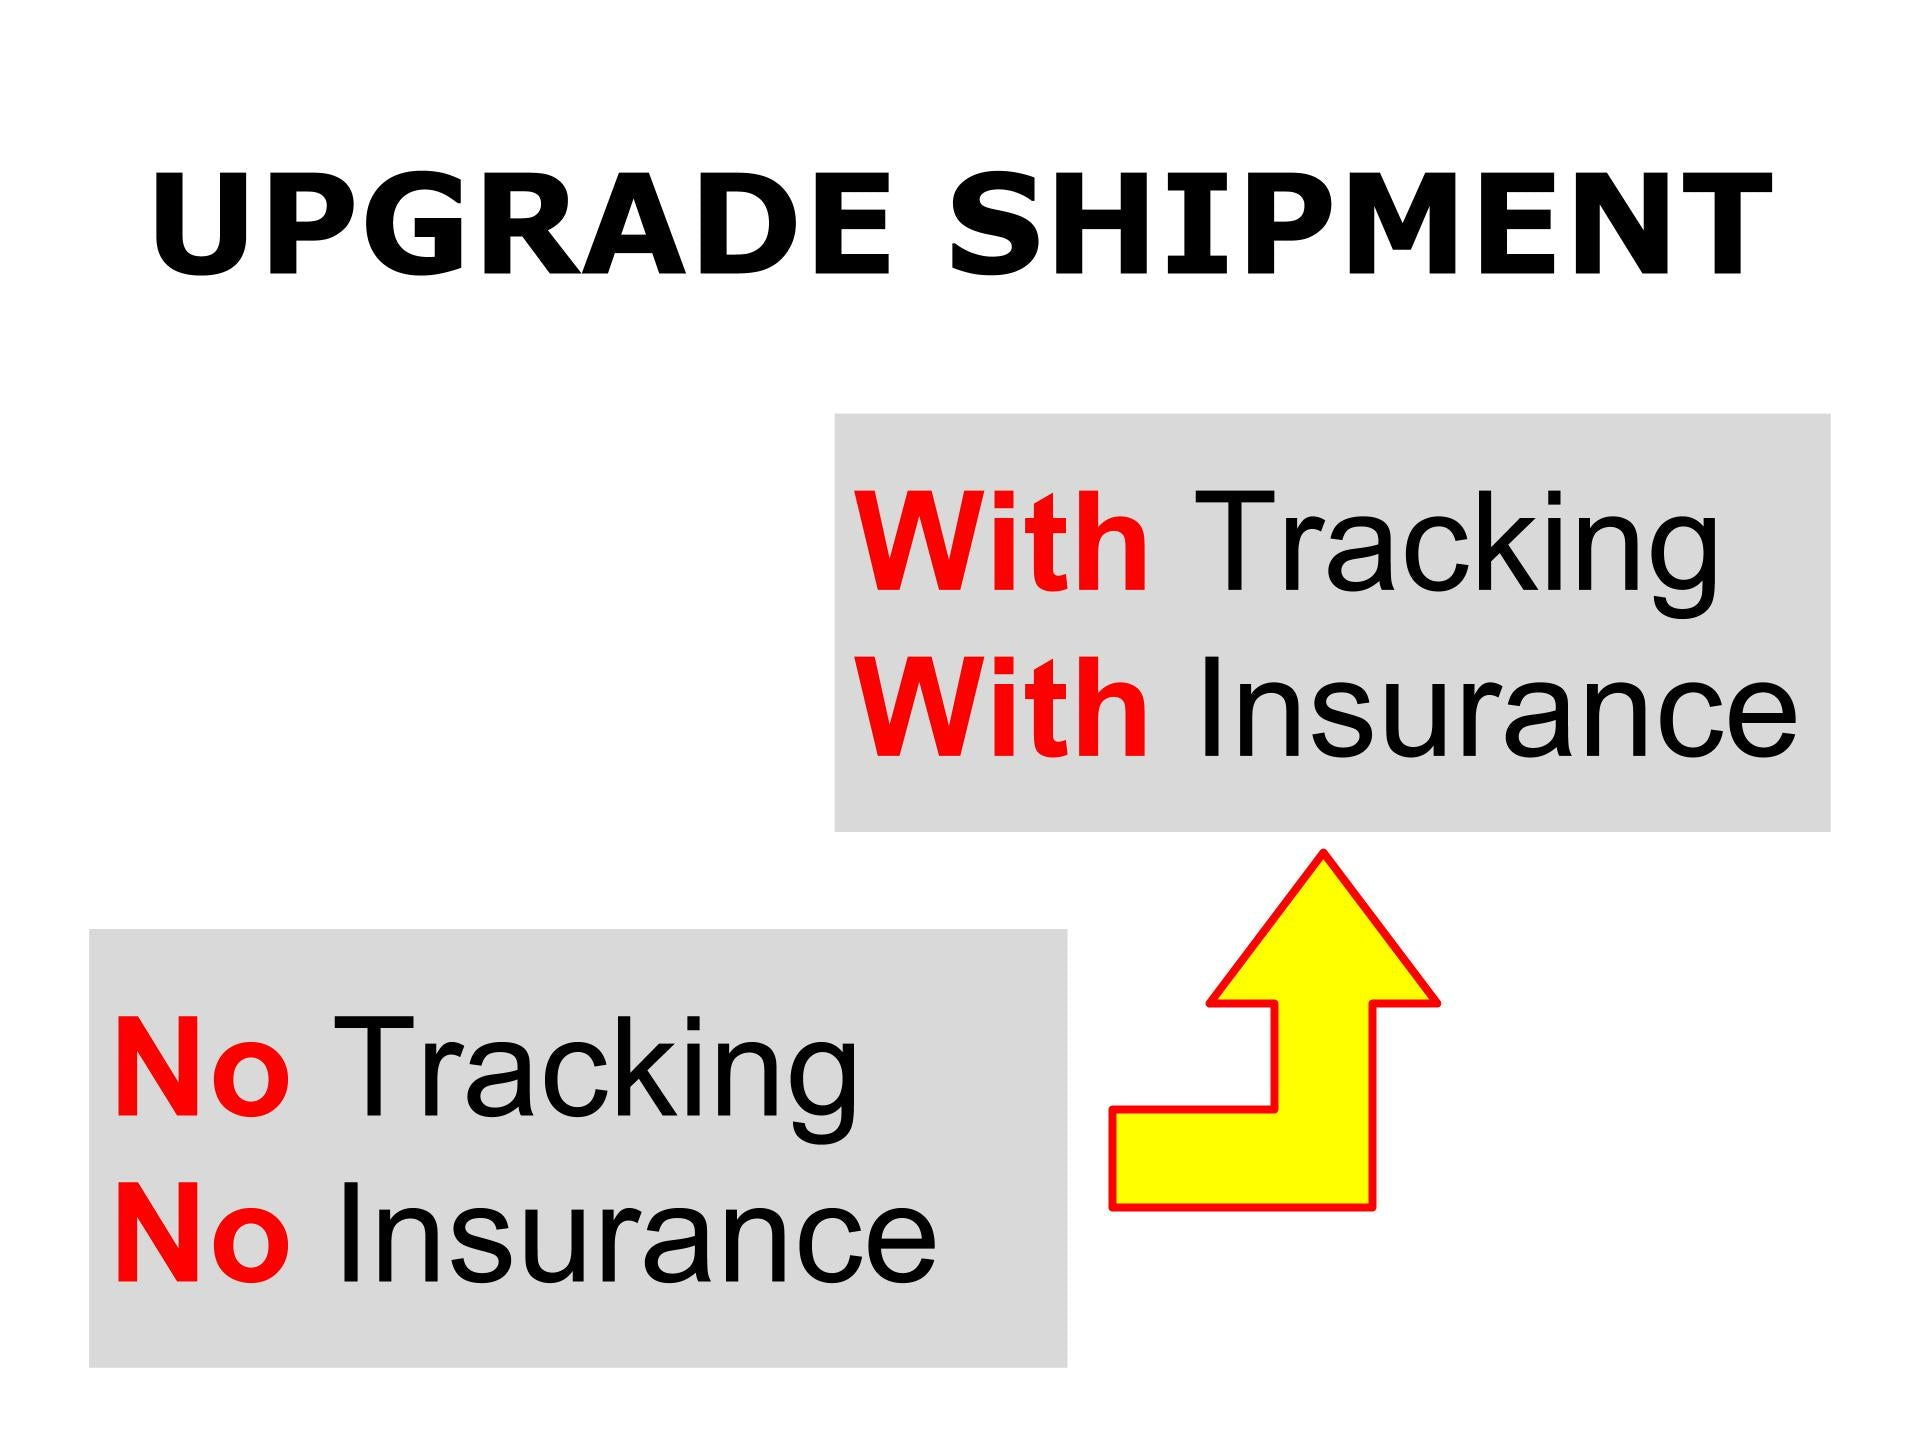 Extra shipping charge to add tracking and insurance